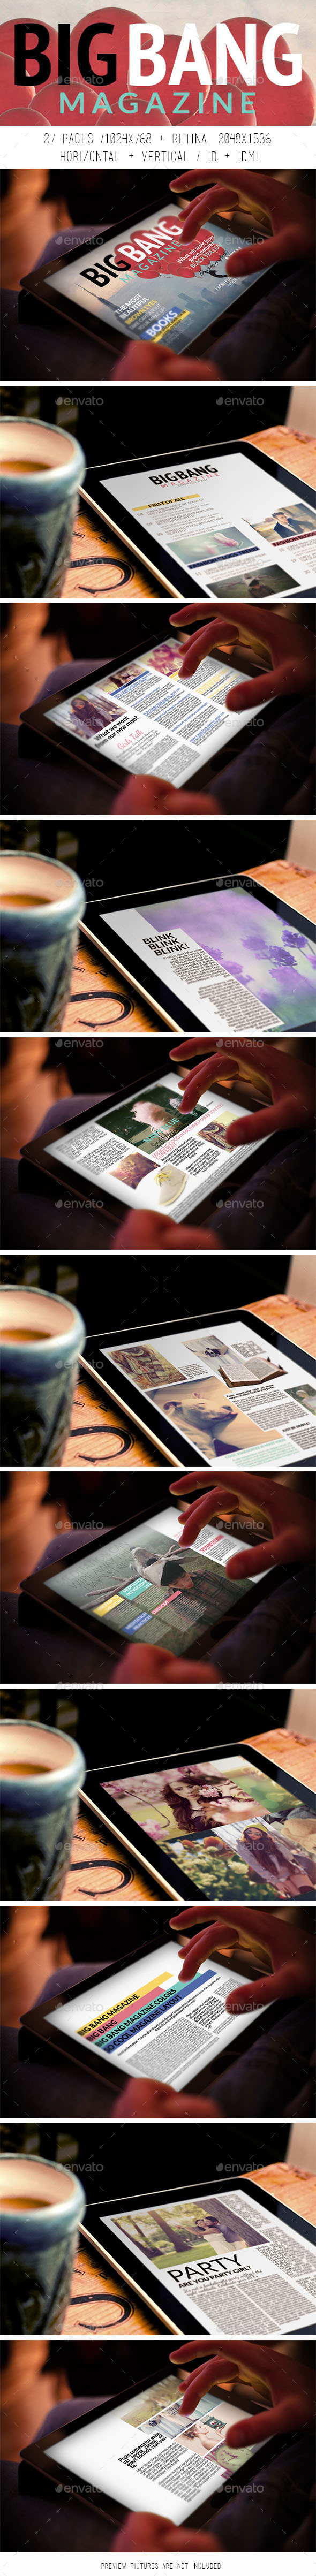 GraphicRiver Tablet Big Bang Magazine 8929645